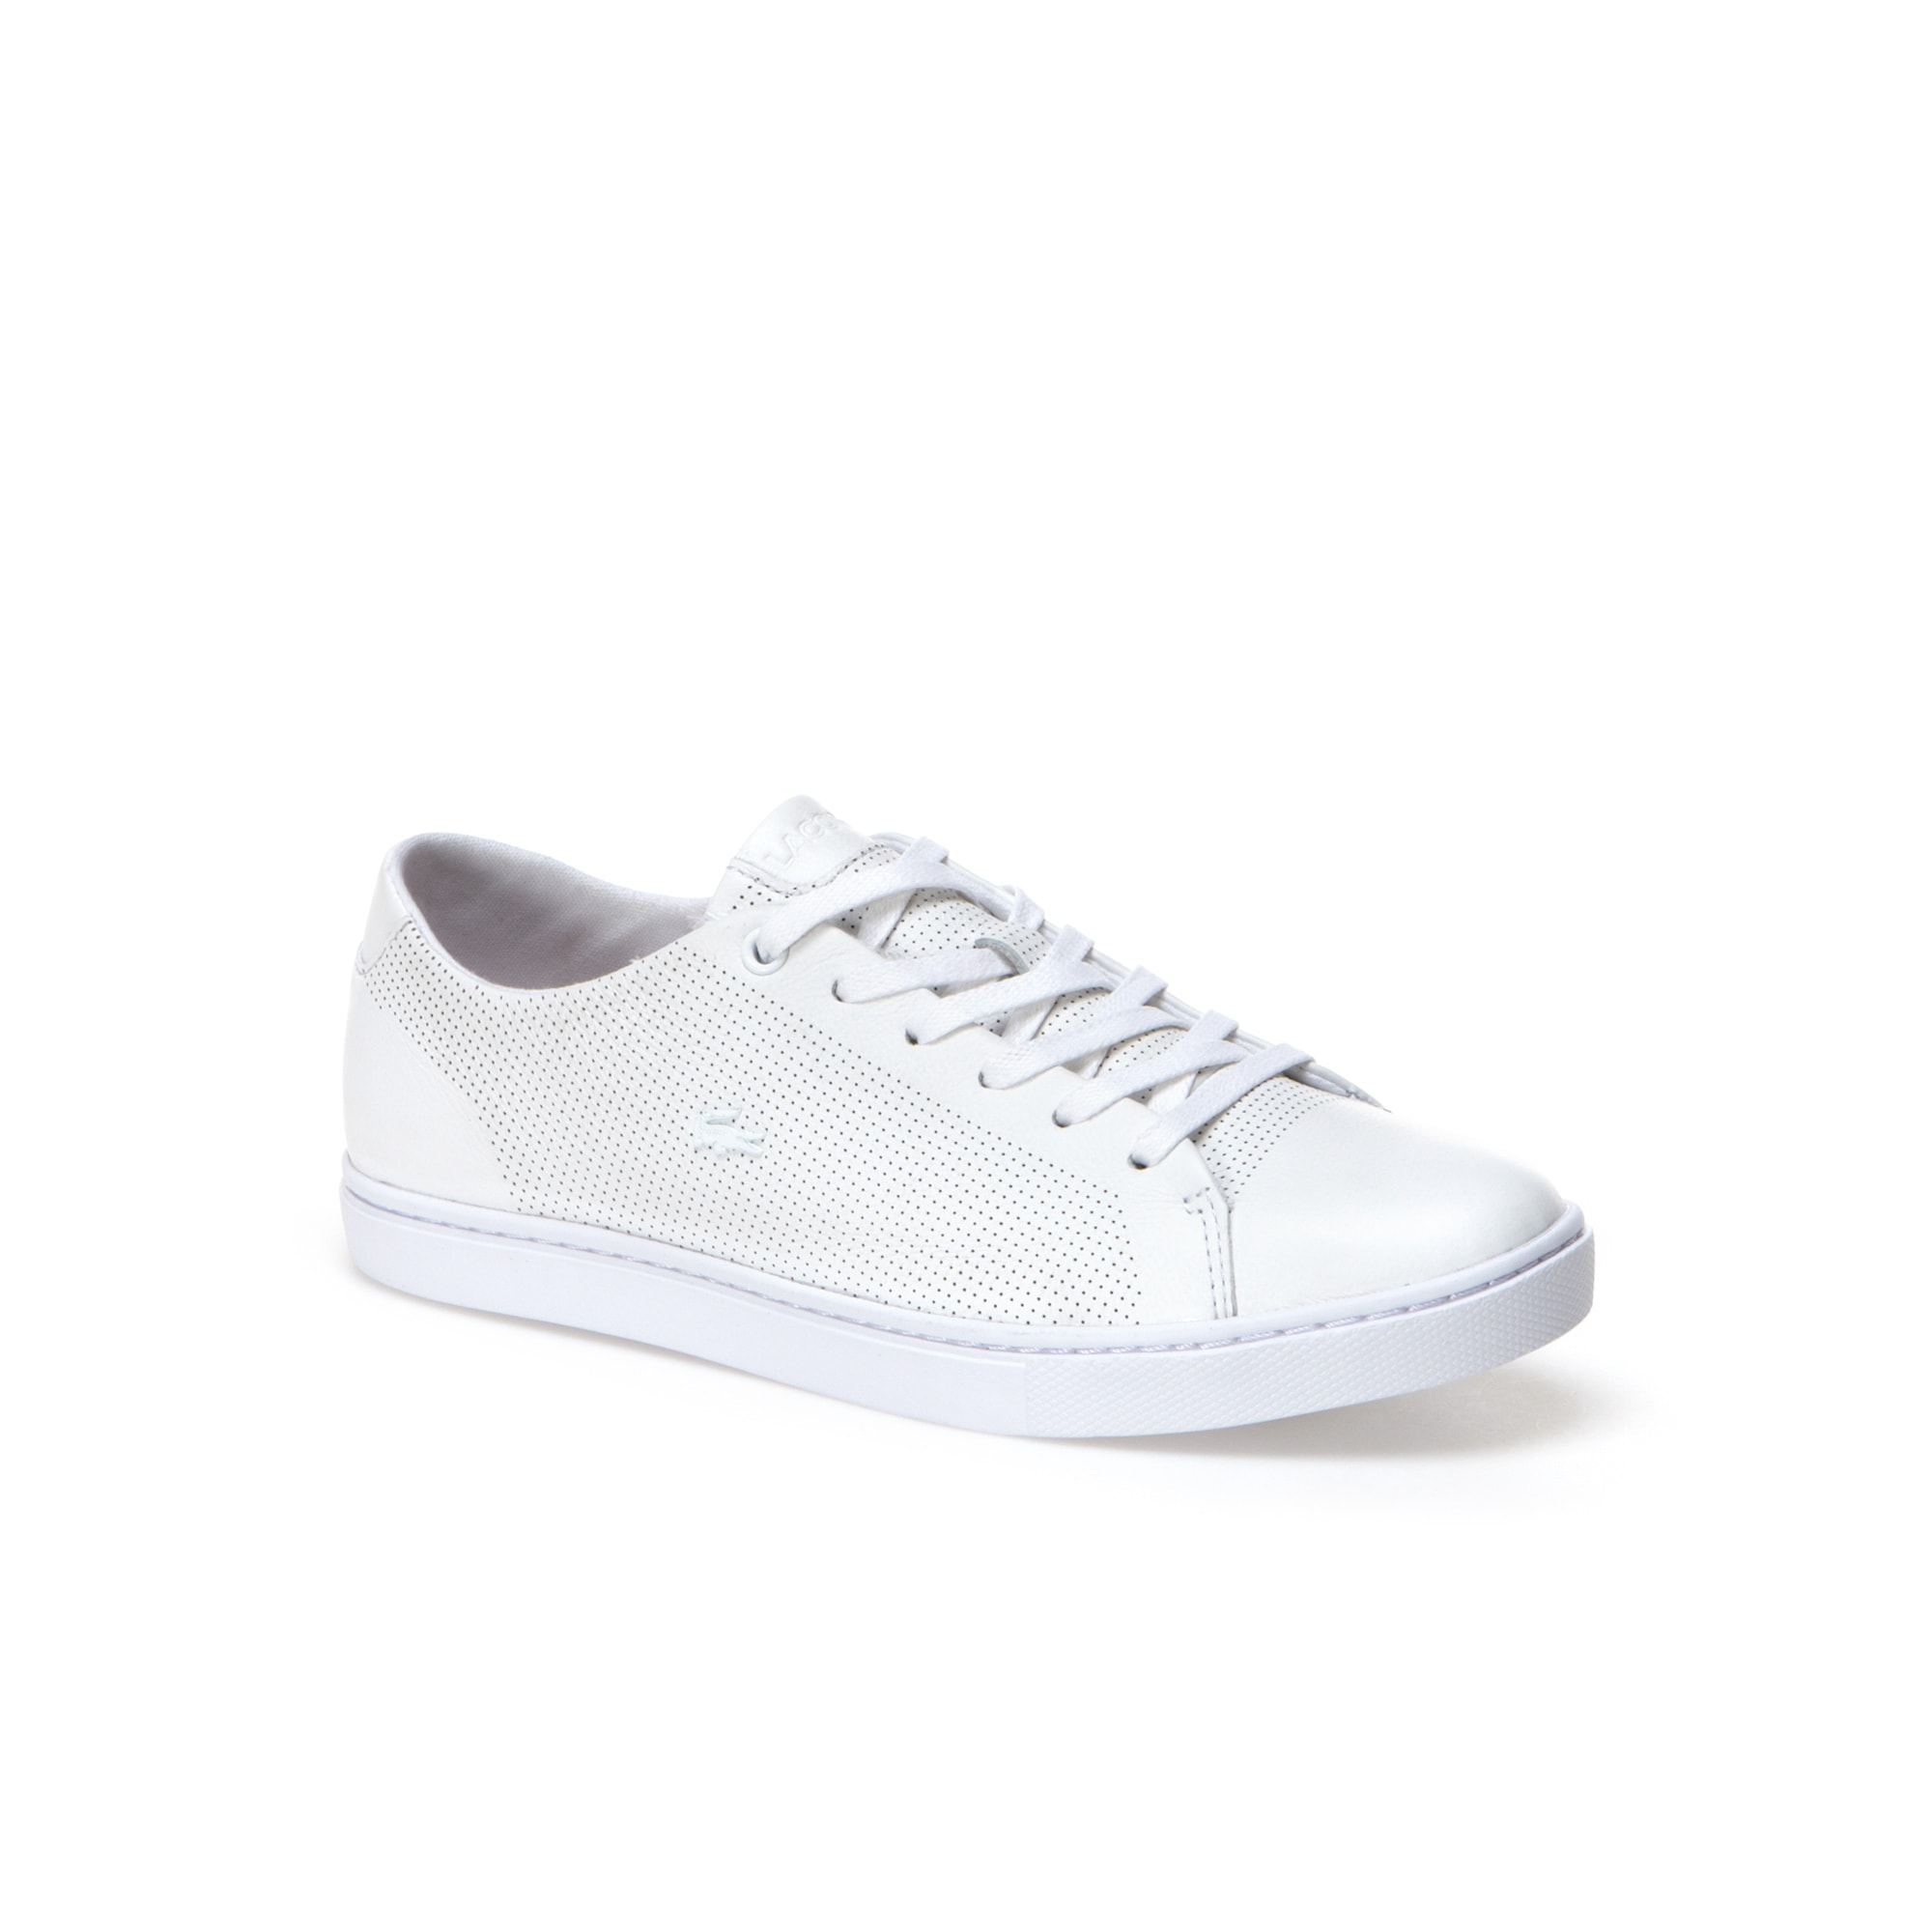 Lacoste perforated sneakers buy cheap new discount best place buy cheap affordable cheap sale low price fee shipping 2015 new yi6Rm